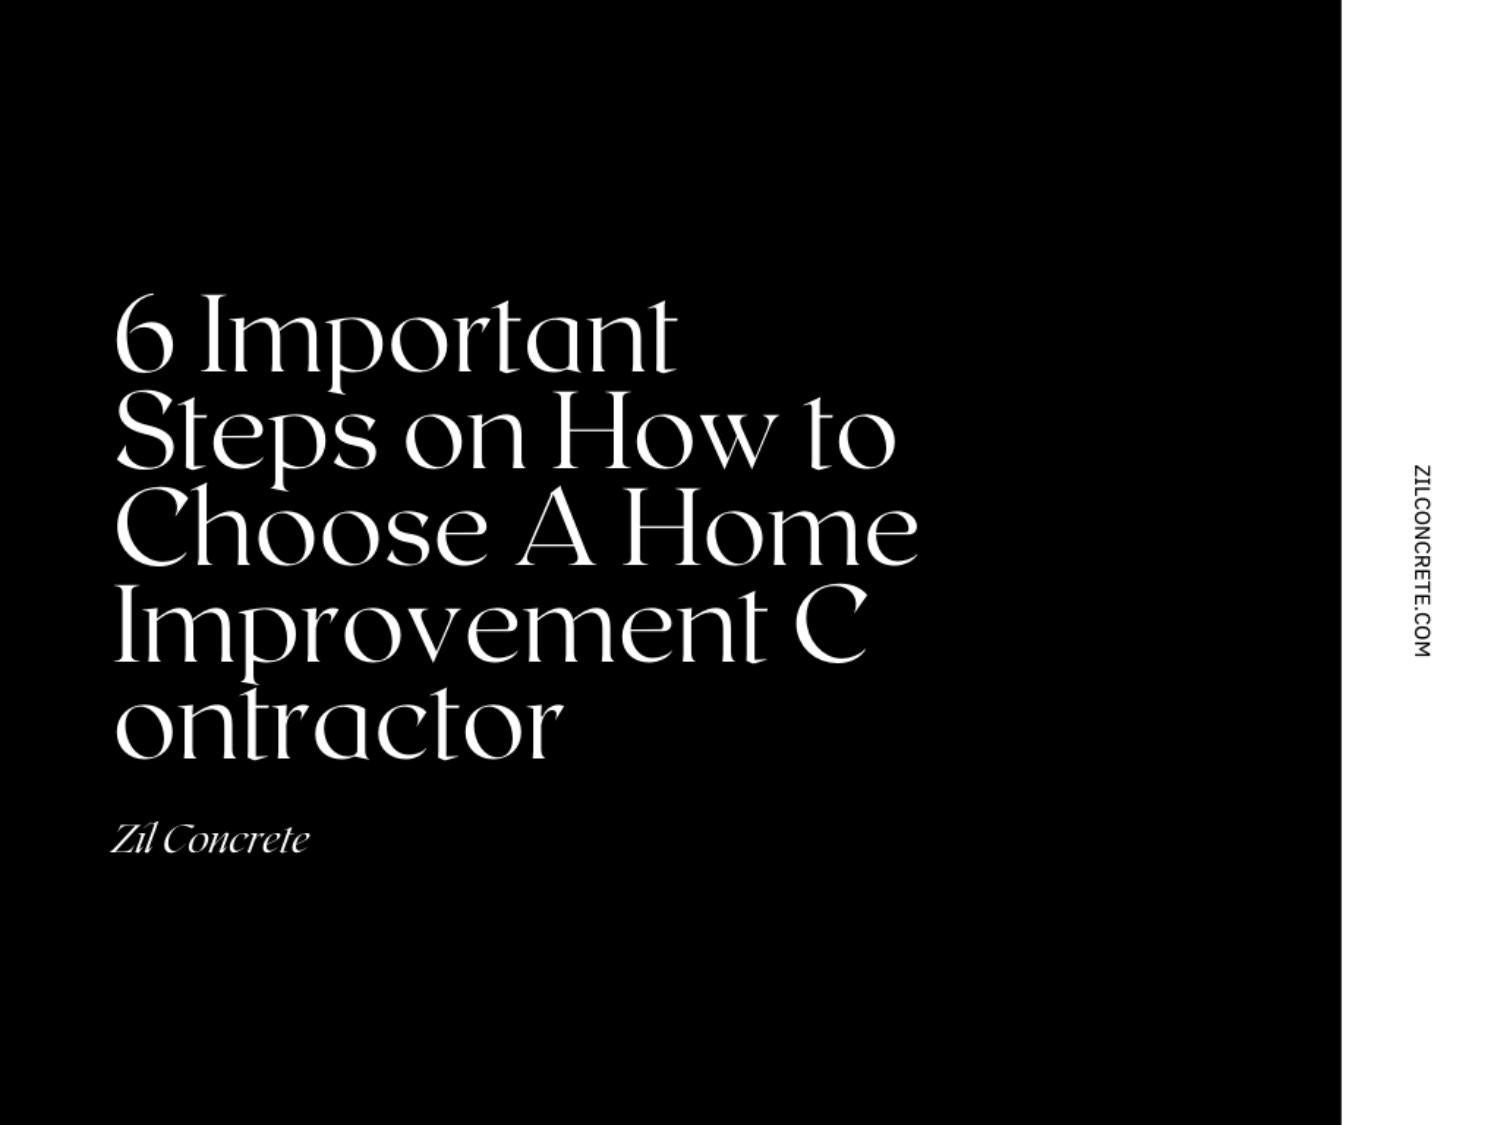 6 Important Steps on How to Choose A Home Improvement Contractor